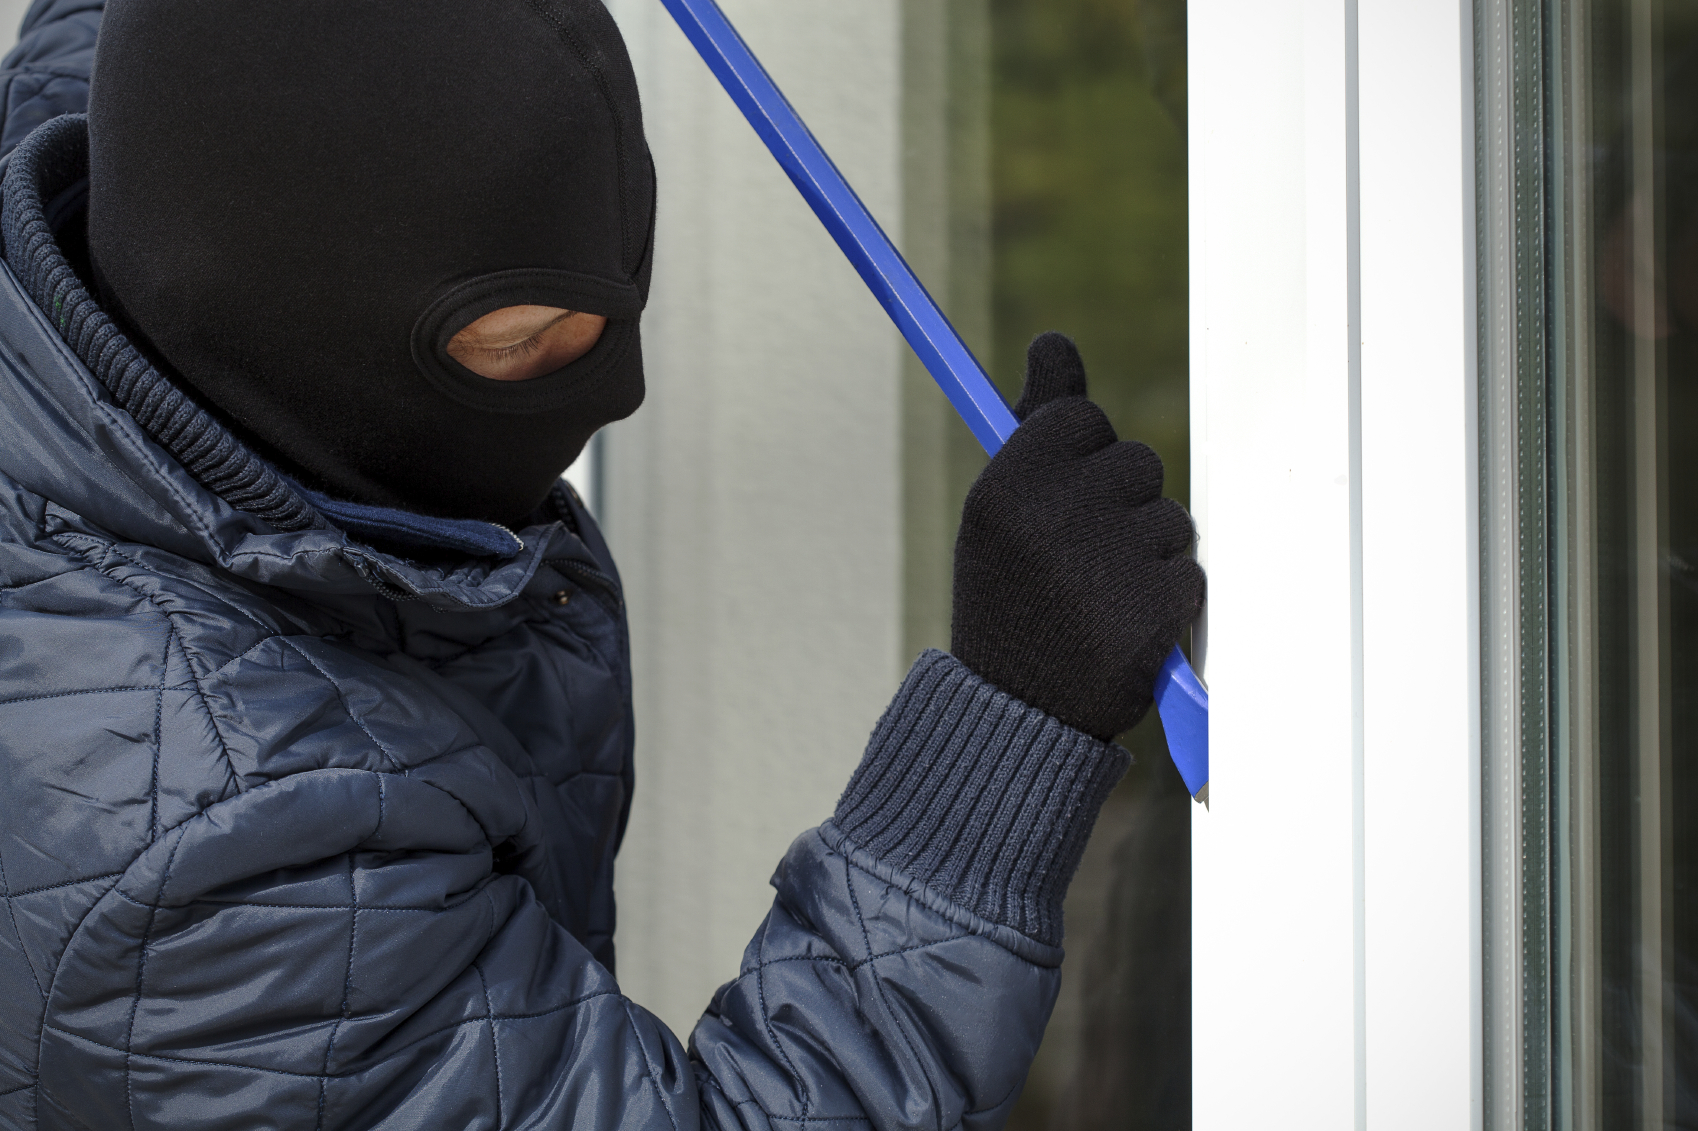 Burglar Forcing Window with Crowbar